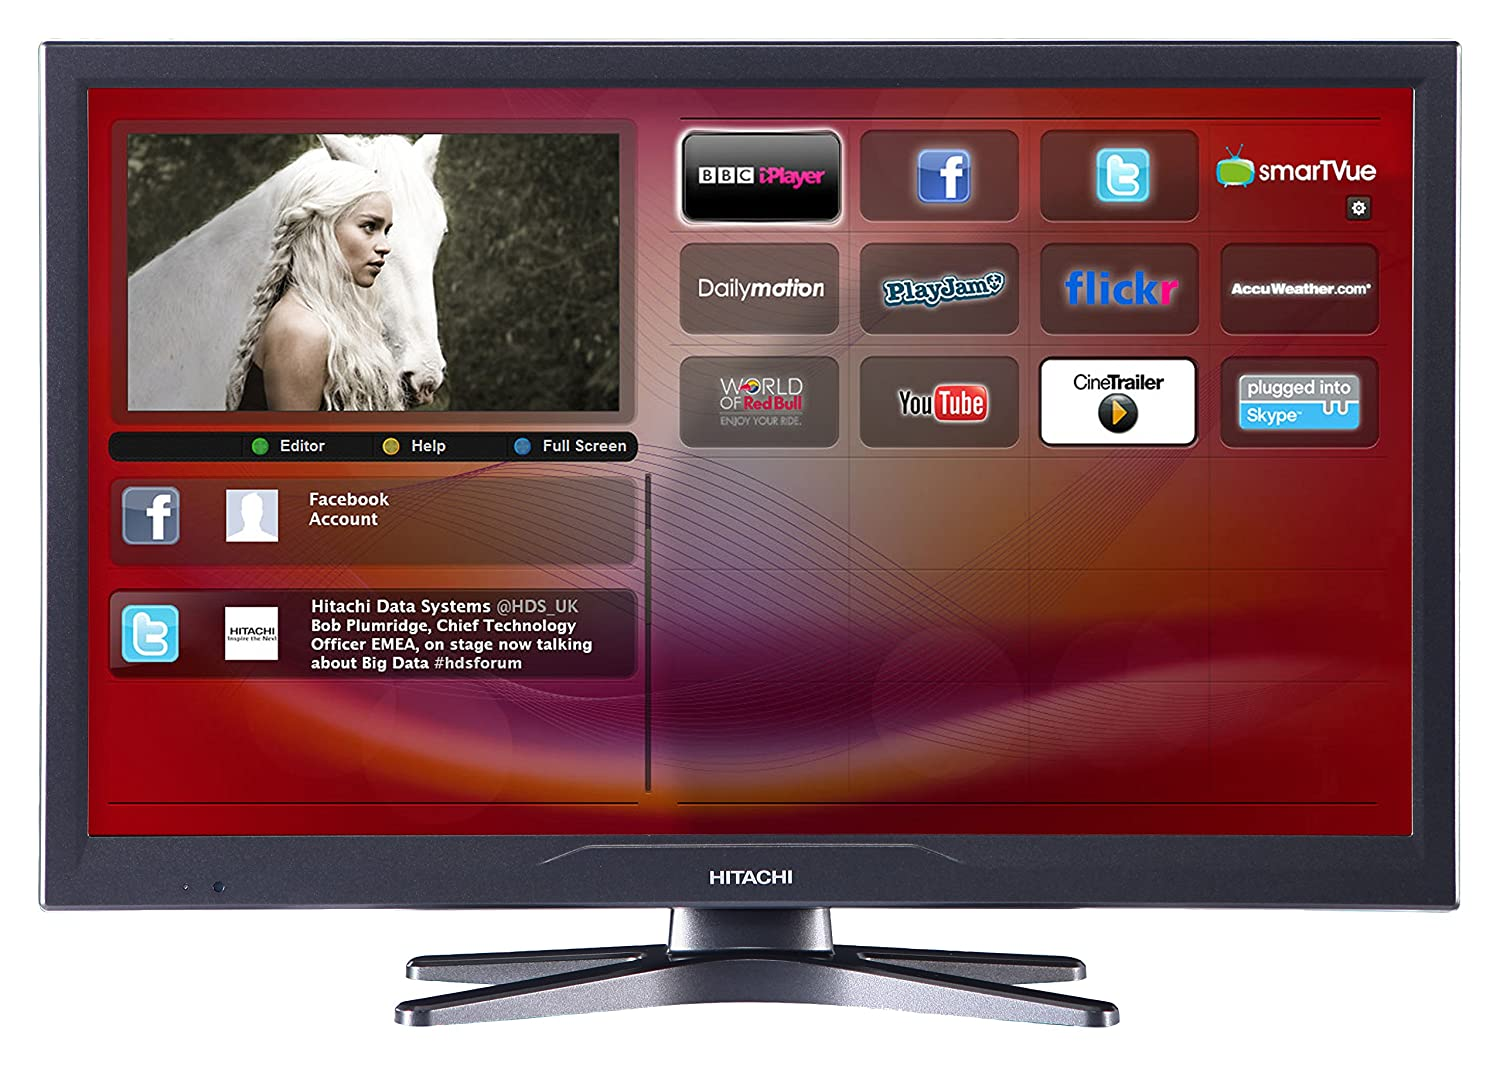 hitachi 24 inch hd ready freeview play smart led tv. hitachi 24hxj15u hd ready led dvd combi smart tv: amazon.co.uk: electronics 24 inch hd freeview play led tv